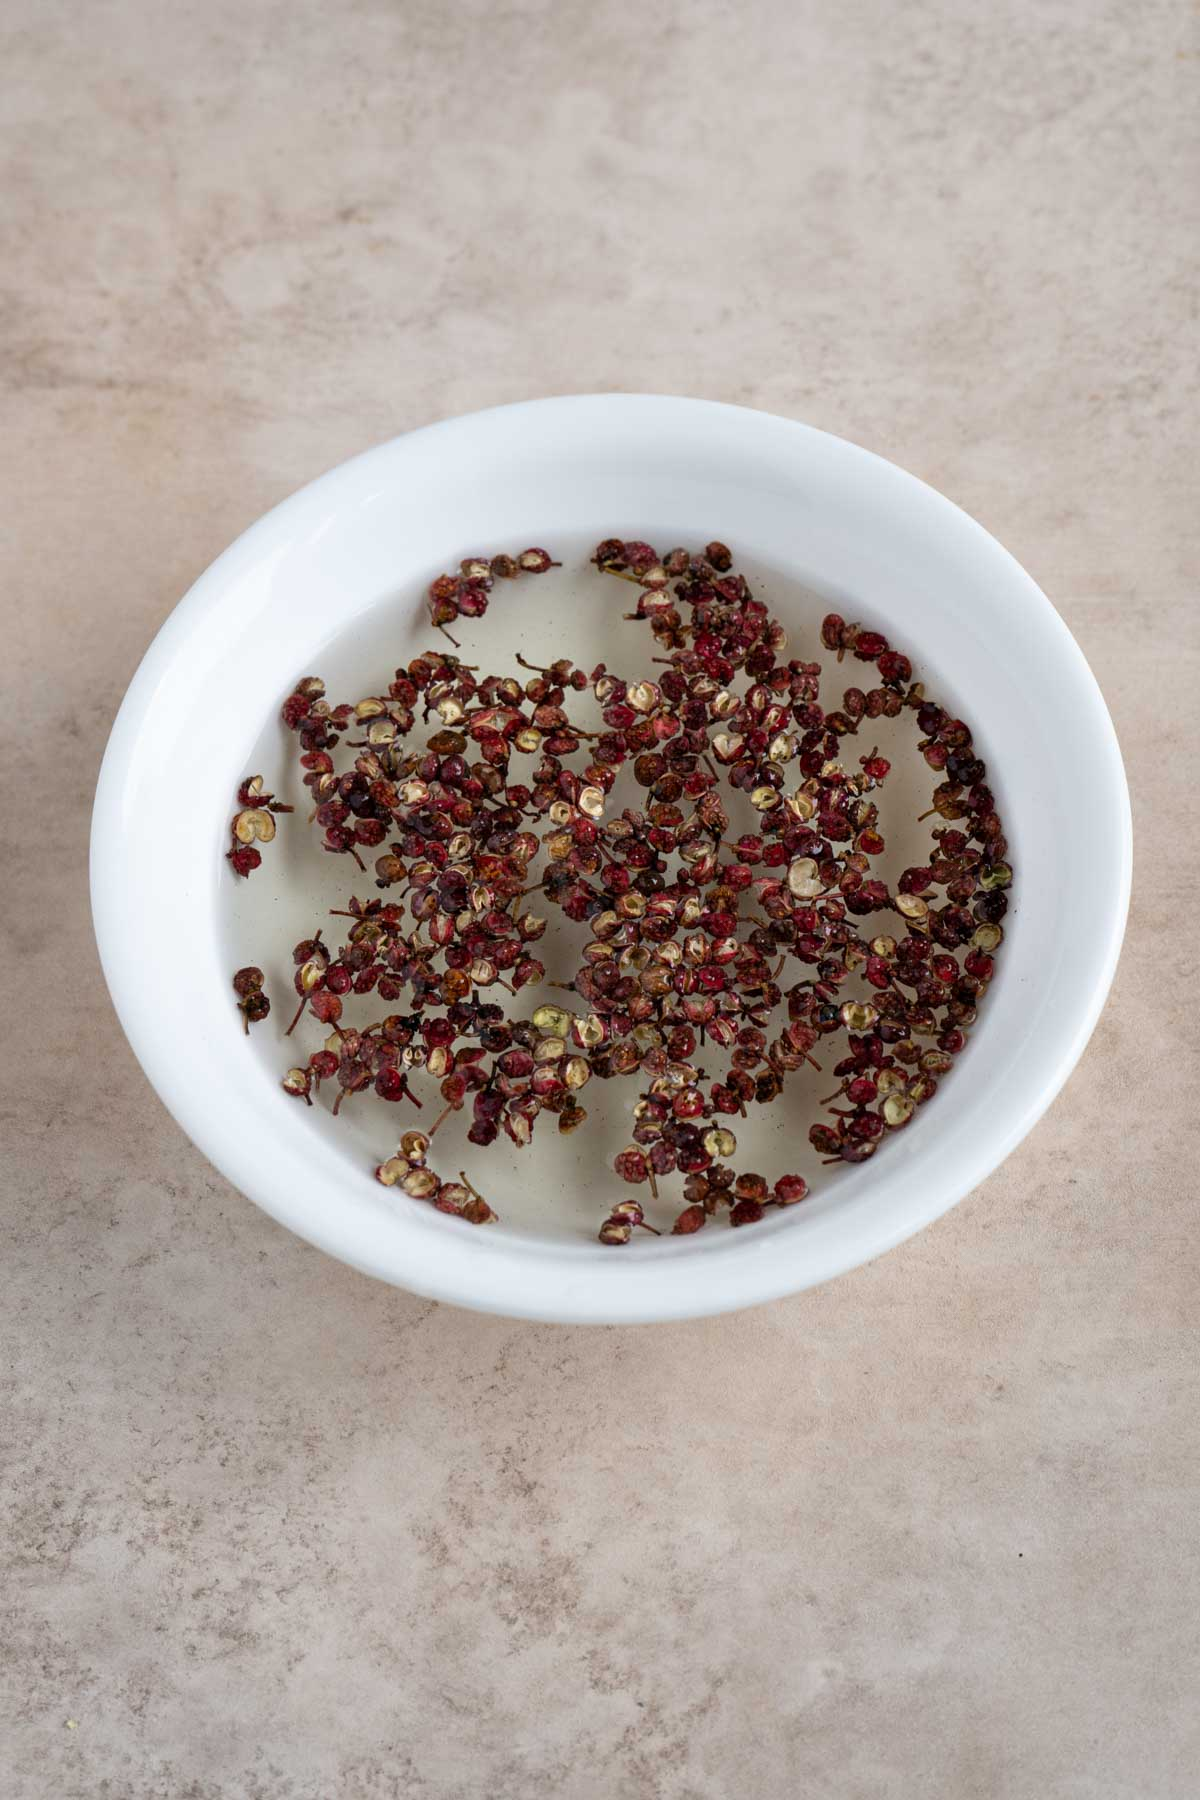 Sichuan peppercorn soaked in water,